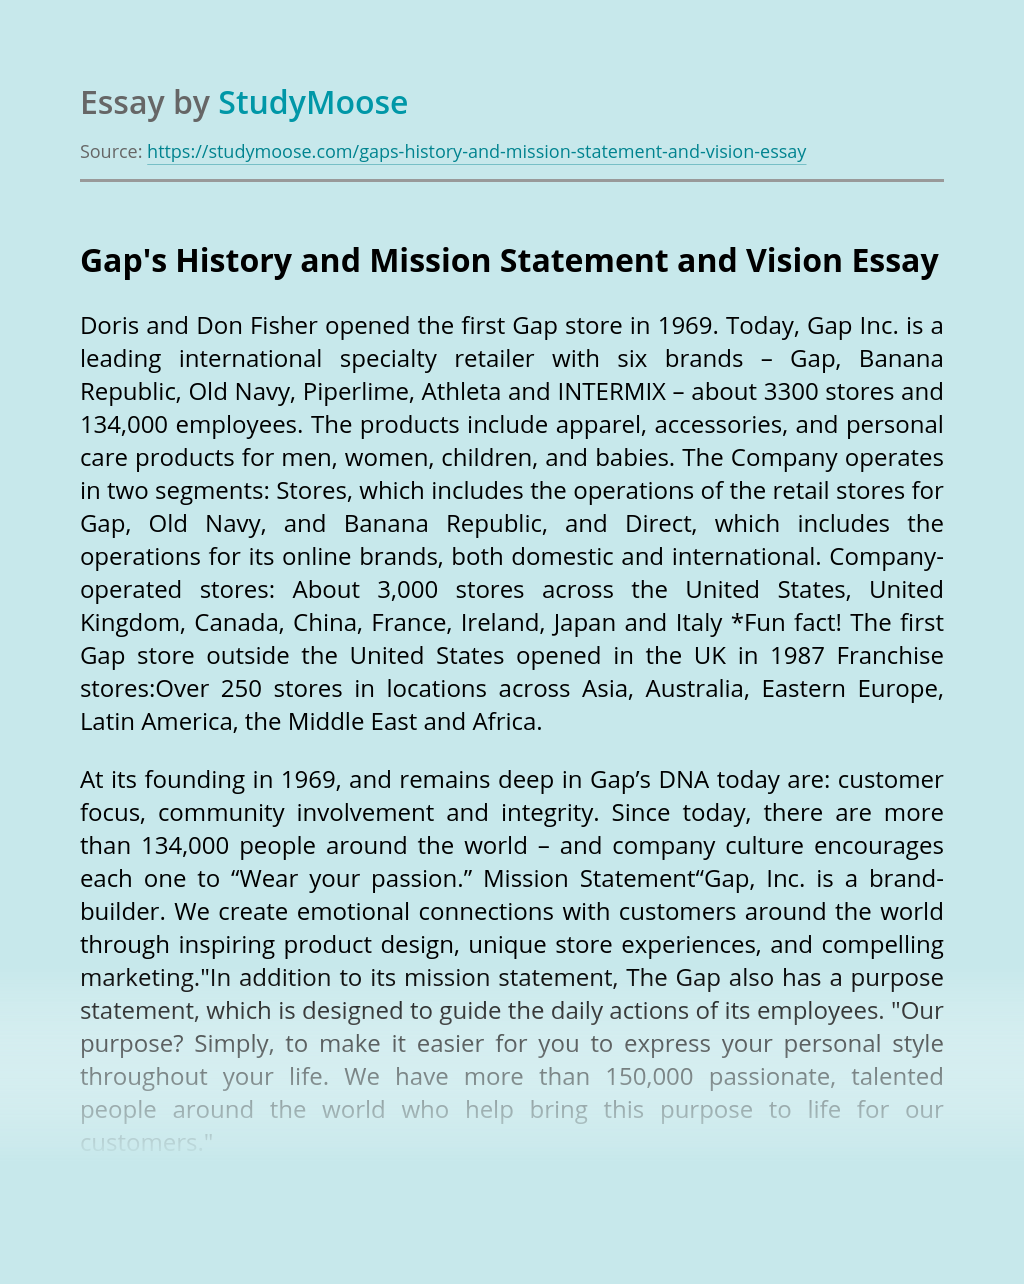 Gap's History and Mission Statement and Vision